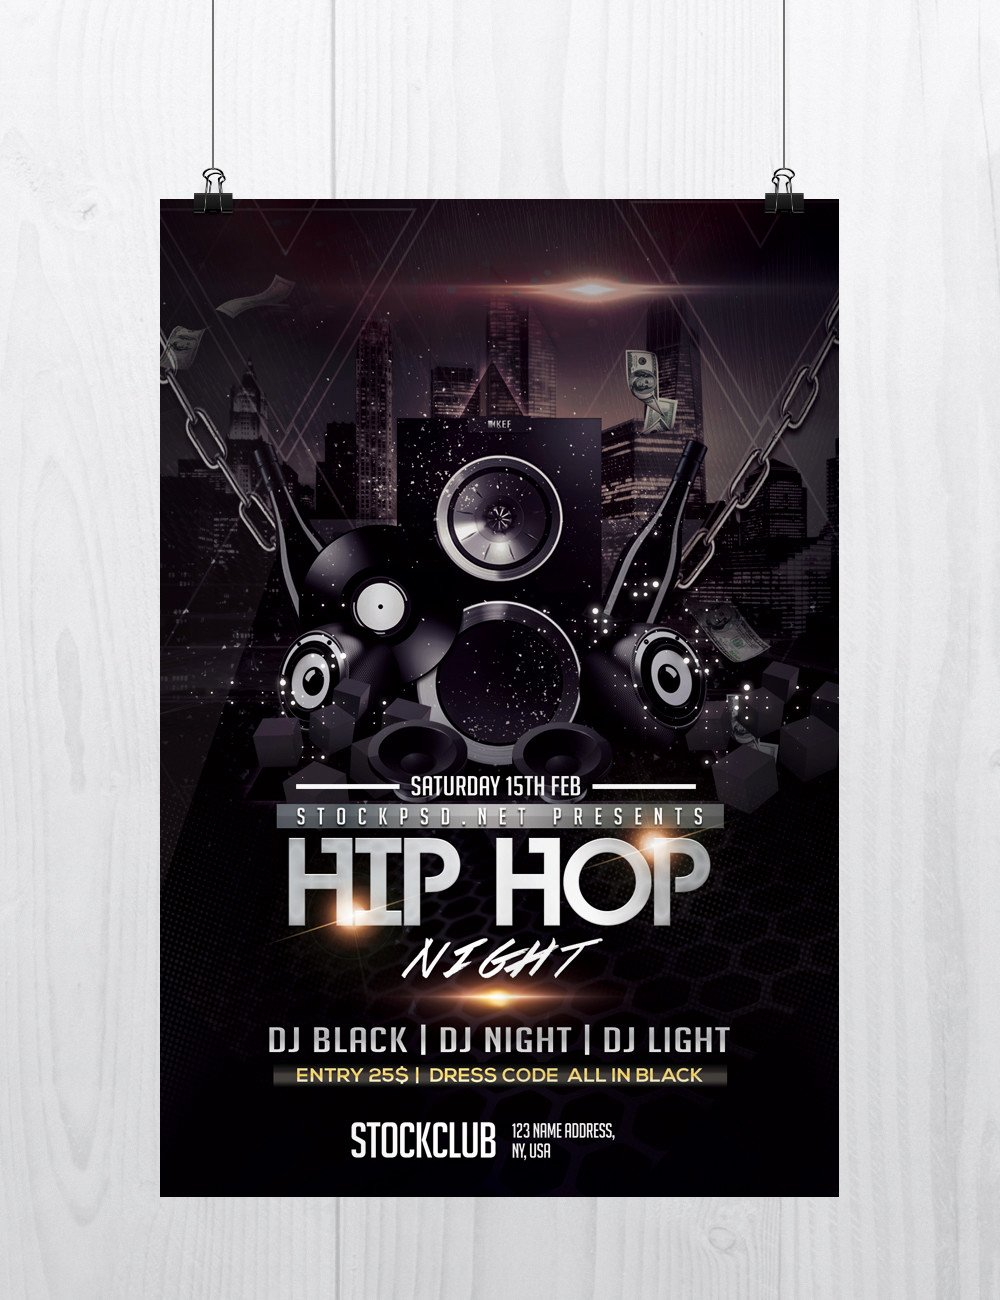 Hip Hop Flyer Templates Elegant Hip Hop Music Download Free Psd Flyer Template Free Psd Flyer Templates Brochures Mockup